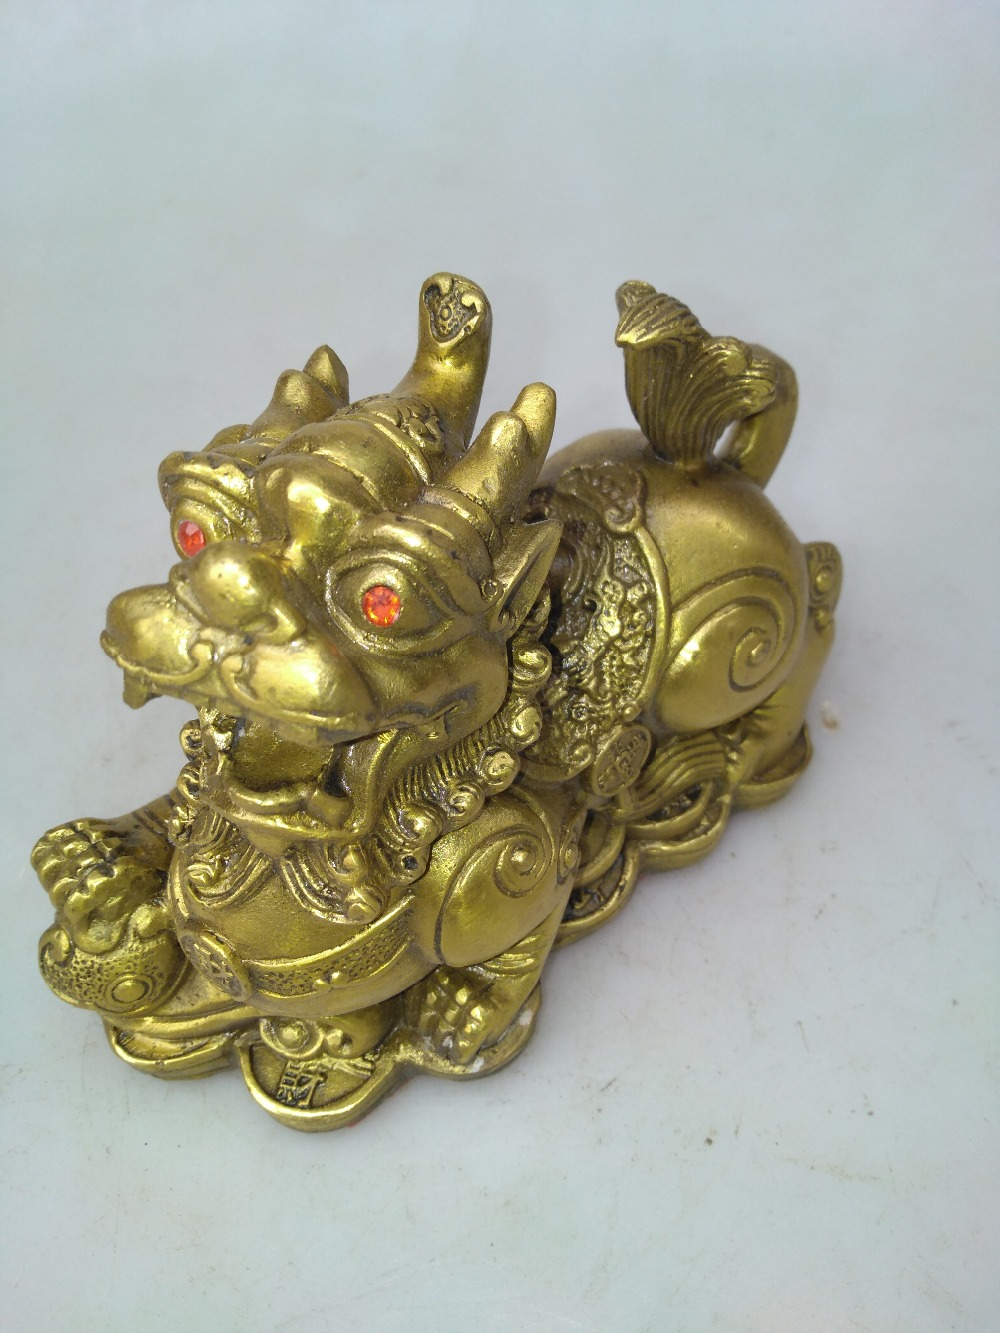 Chinese hand carved brass money beast a pair of sculpturesChinese hand carved brass money beast a pair of sculptures